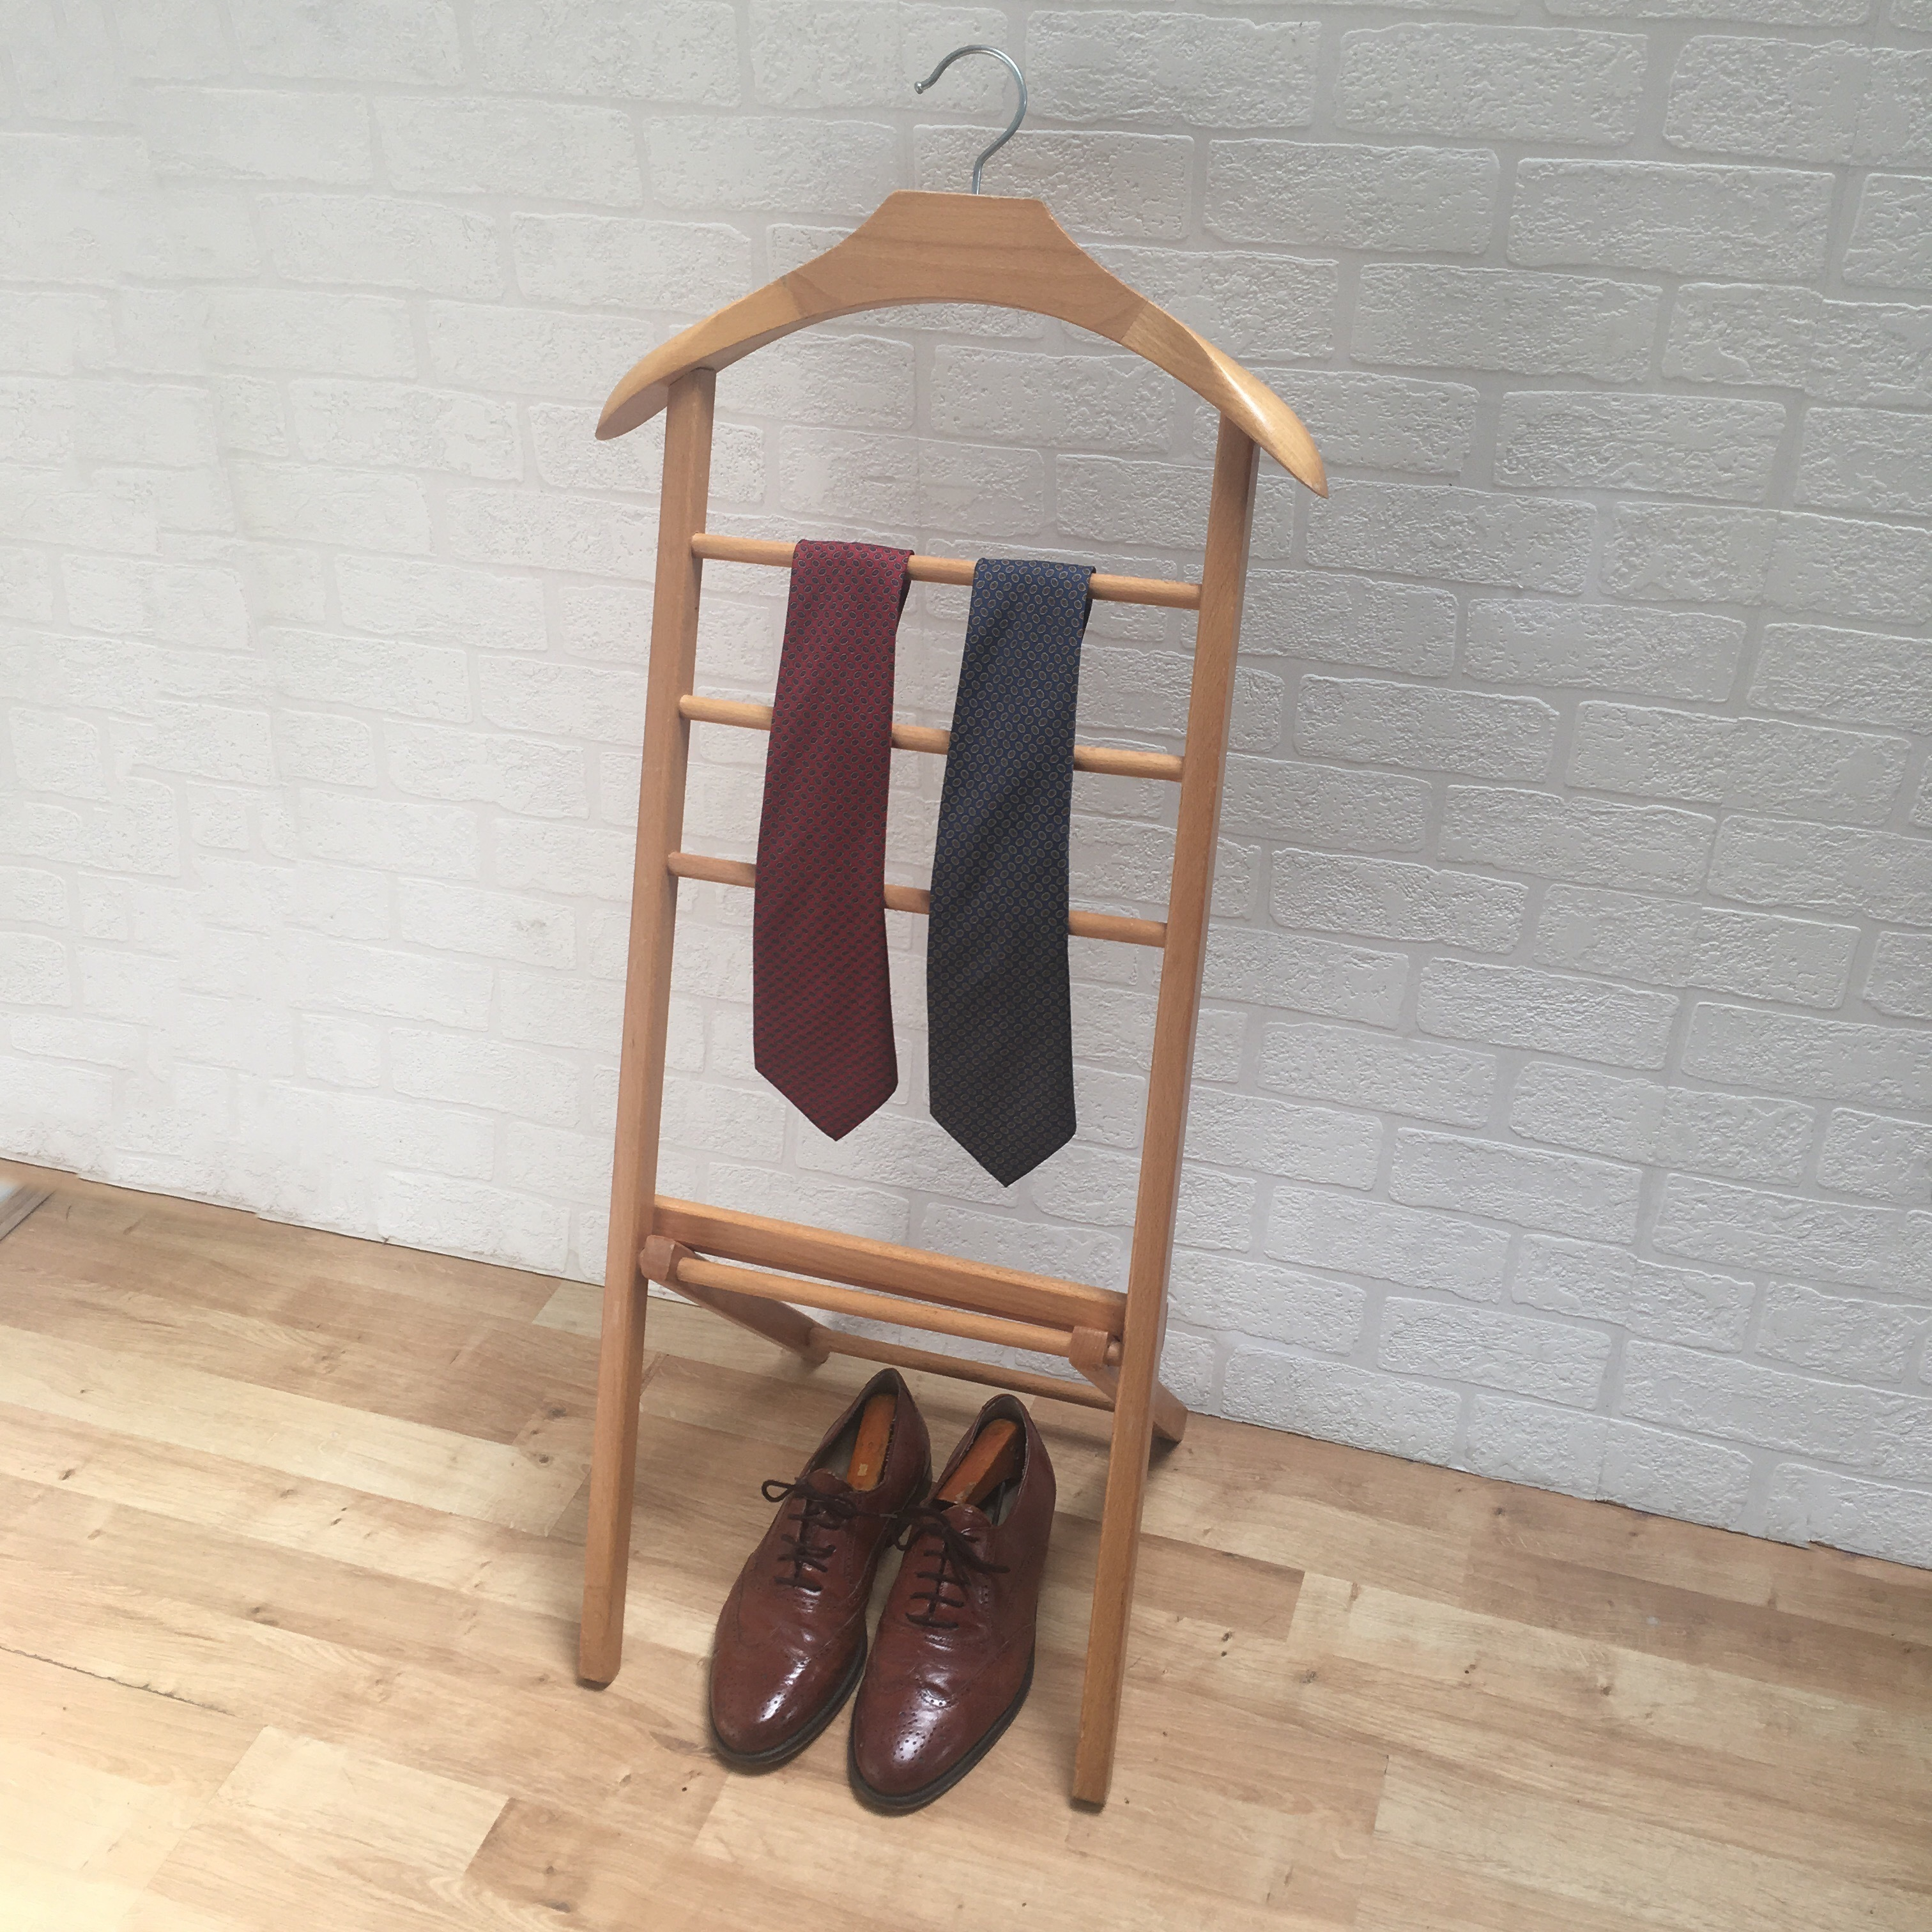 Original Vintage Retro Wooden Valet Stand Gentleman Butler Jacket Suit Trousers Ties Shoes Storage Free Standing Folding Clothes Hanger